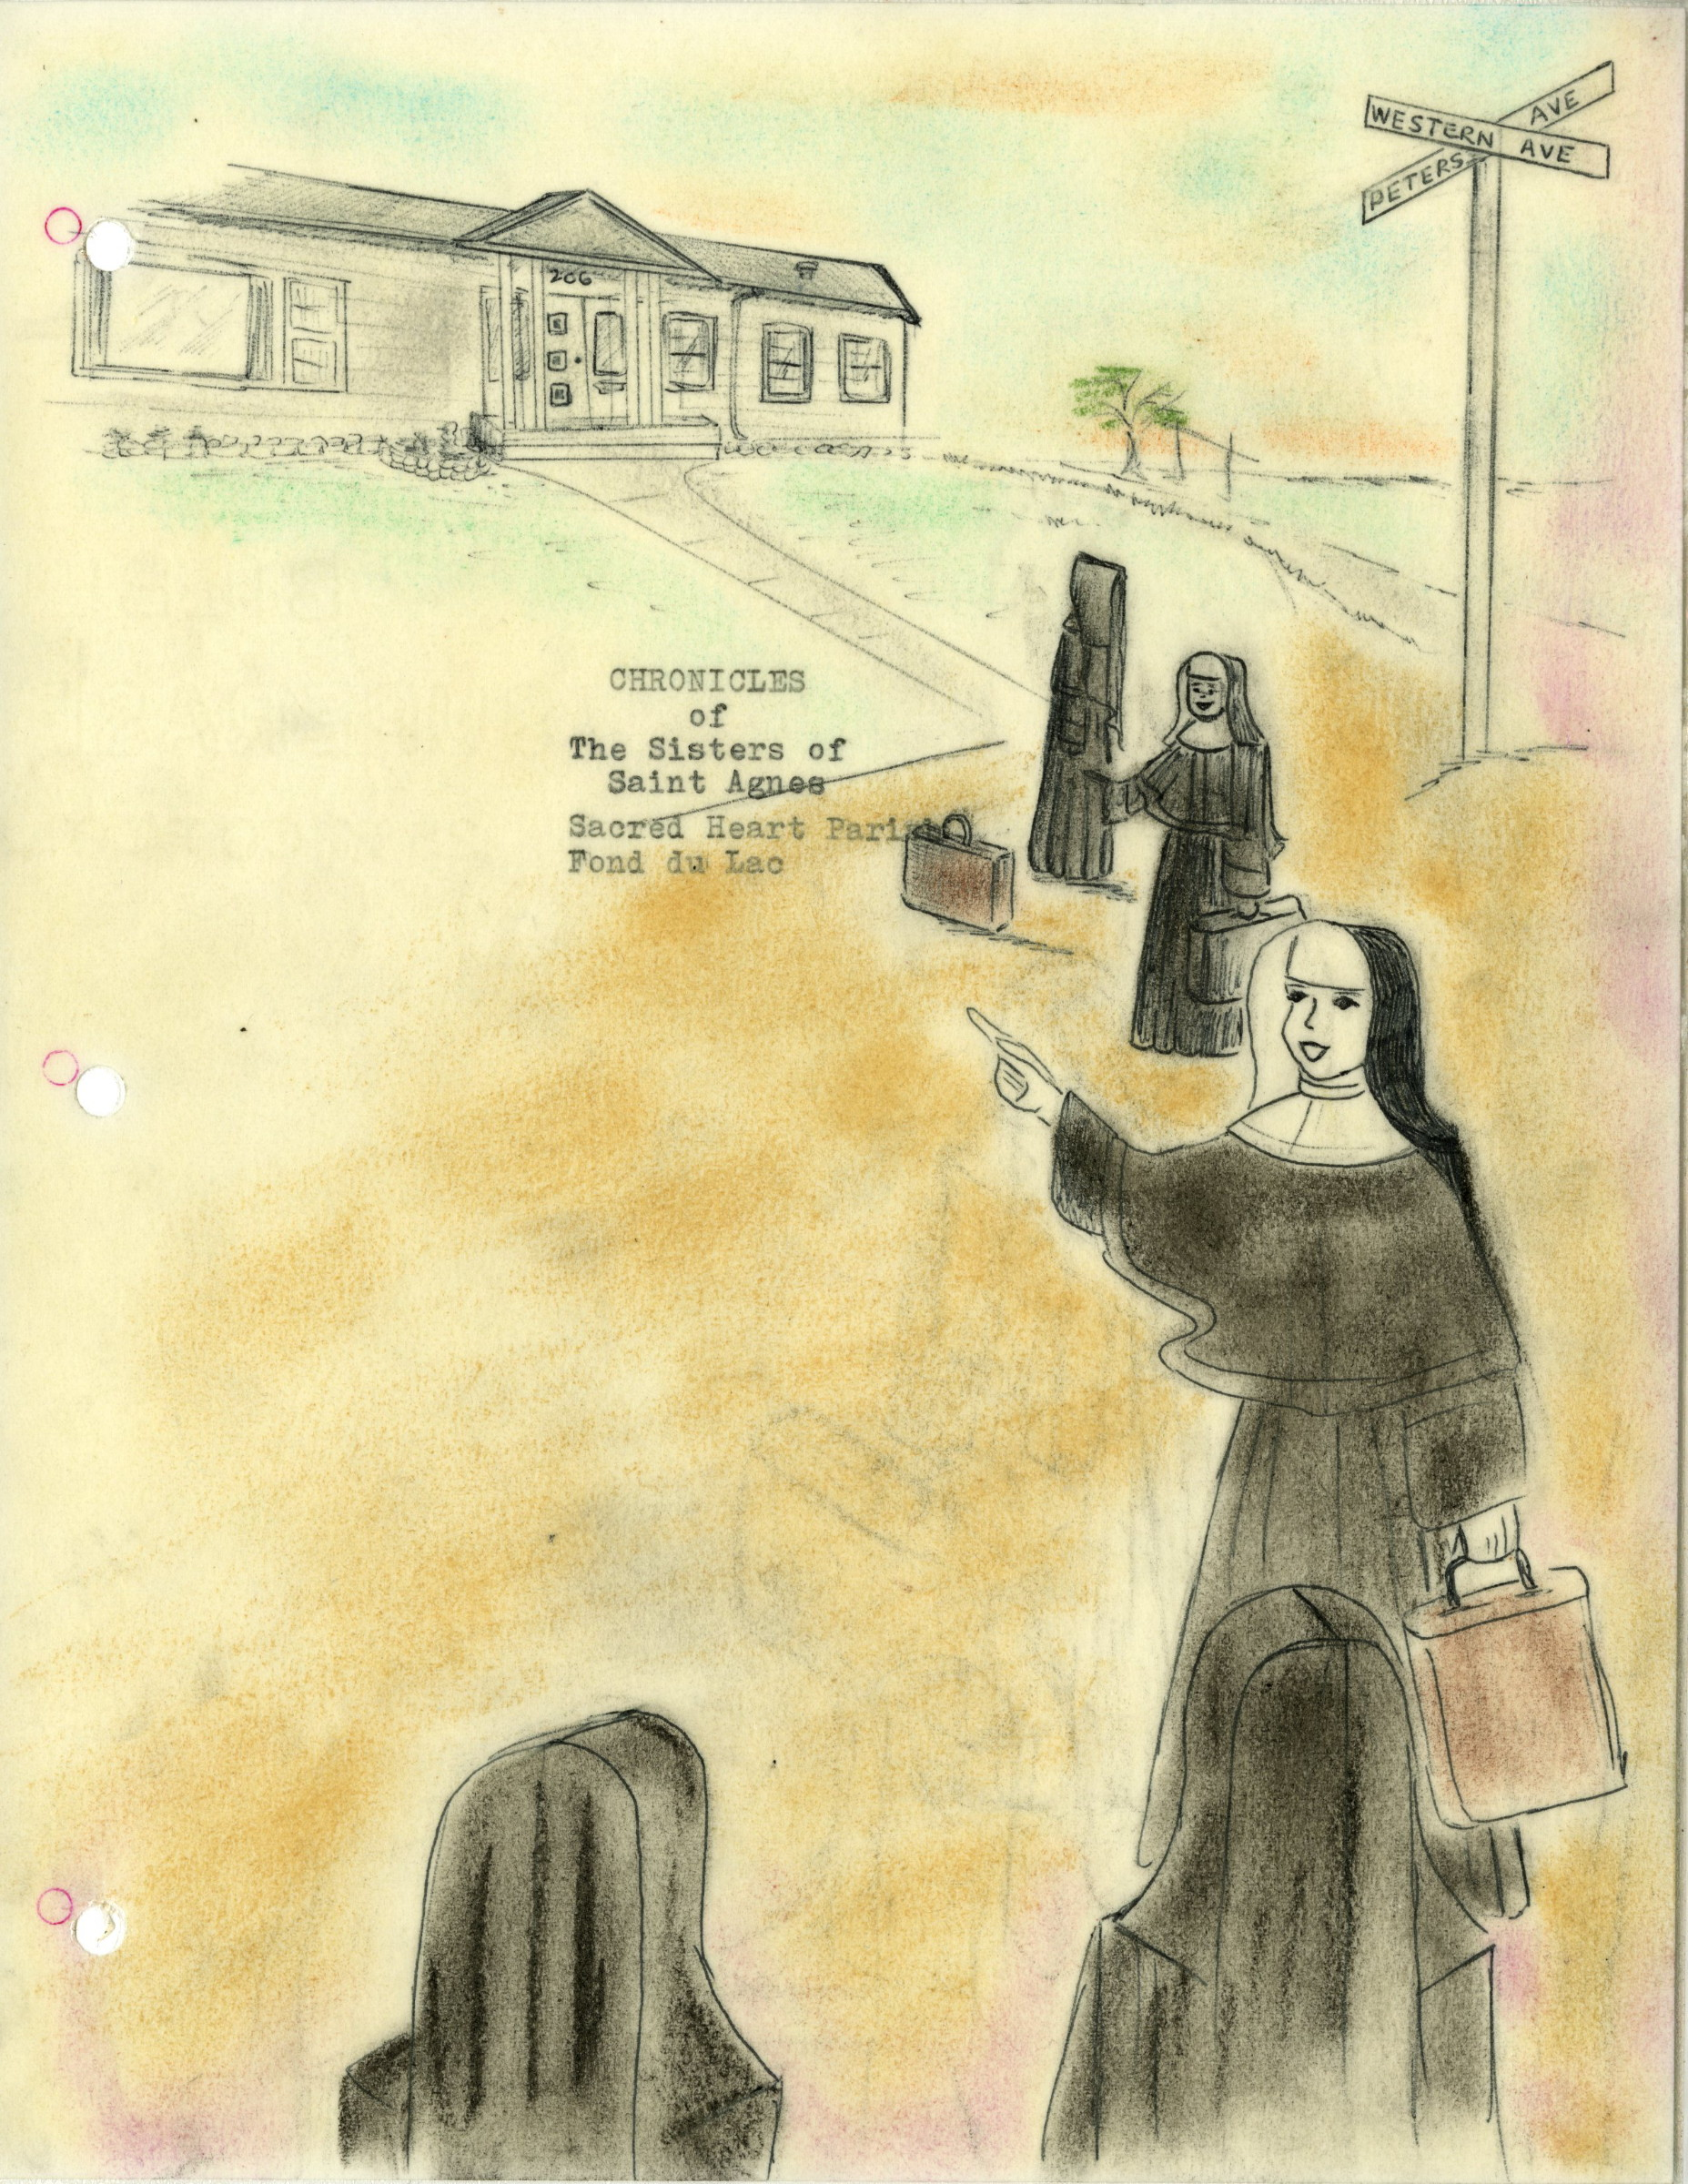 Cover page of the Chronicles of the Sisters of St. Agnes at Sacred Heart School, 1960s.